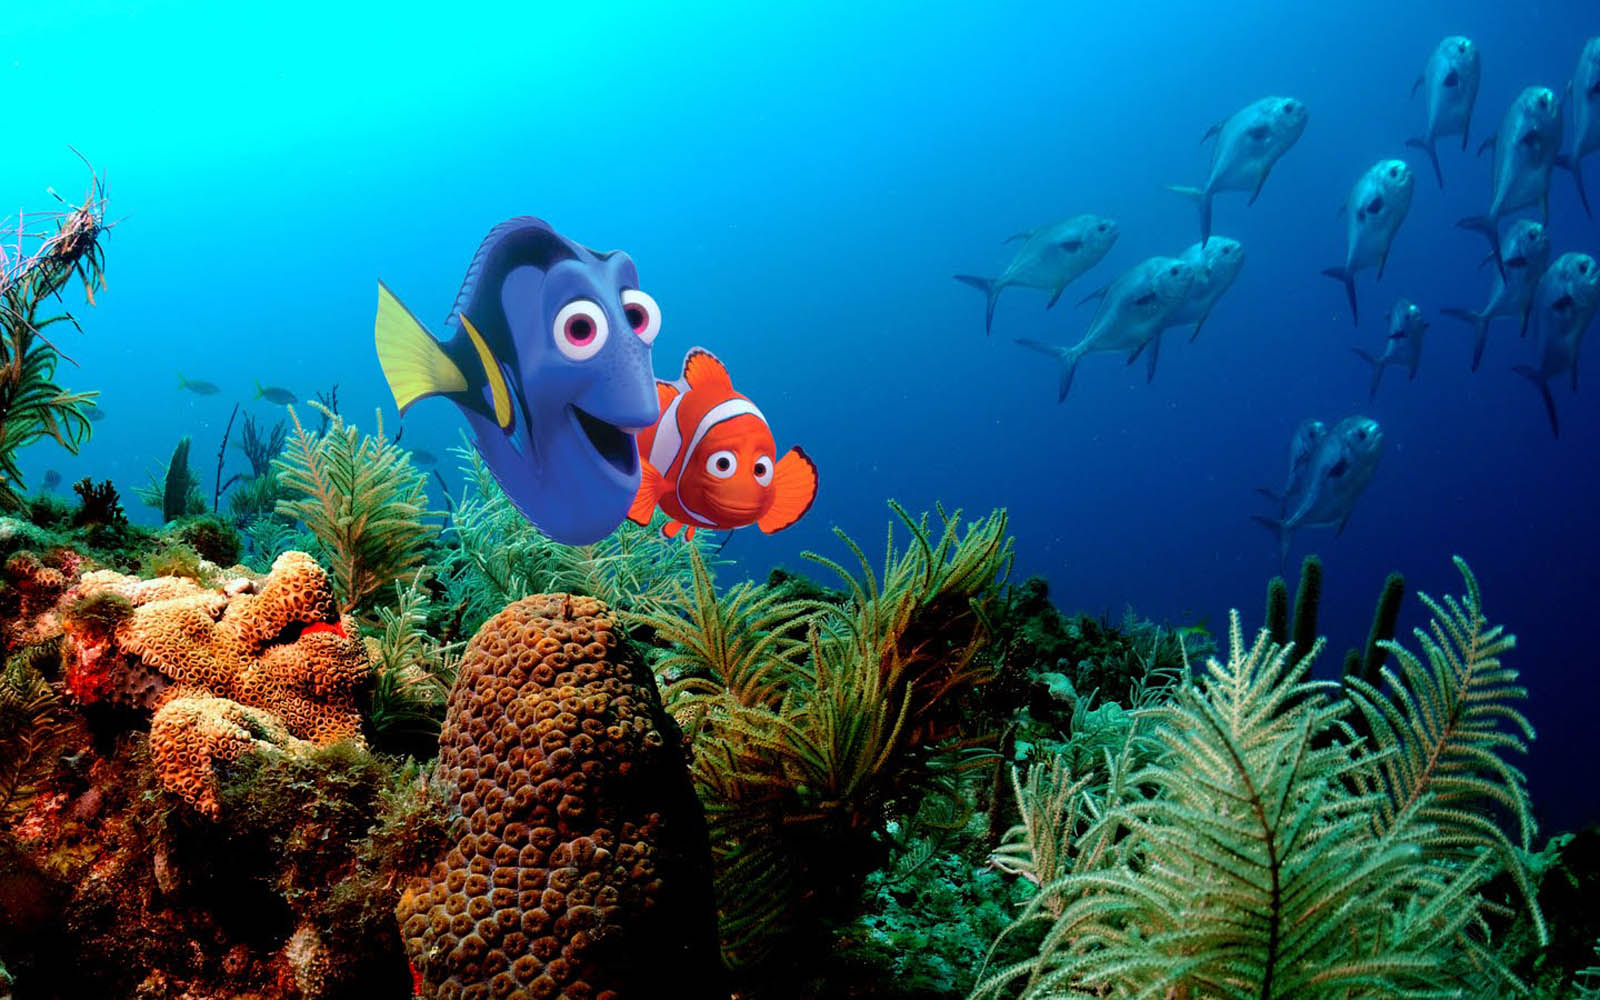 wallpapers Finding Nemo Wallpapers 1600x1000